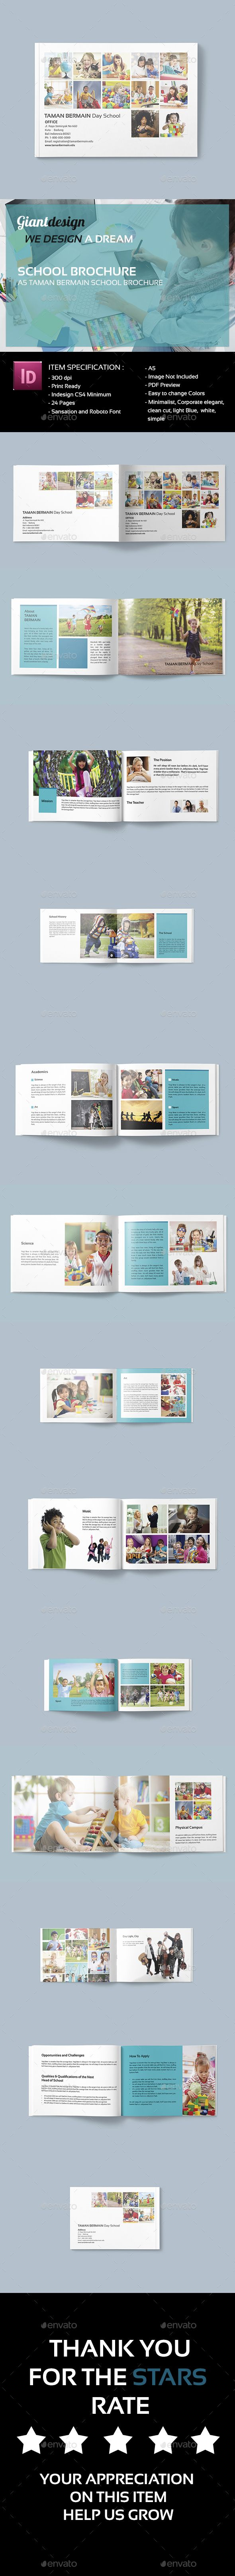 PreSchool Brochure  — InDesign Template #study #school • Download ➝ https://graphicriver.net/item/preschool-brochure/17768120?ref=pxcr